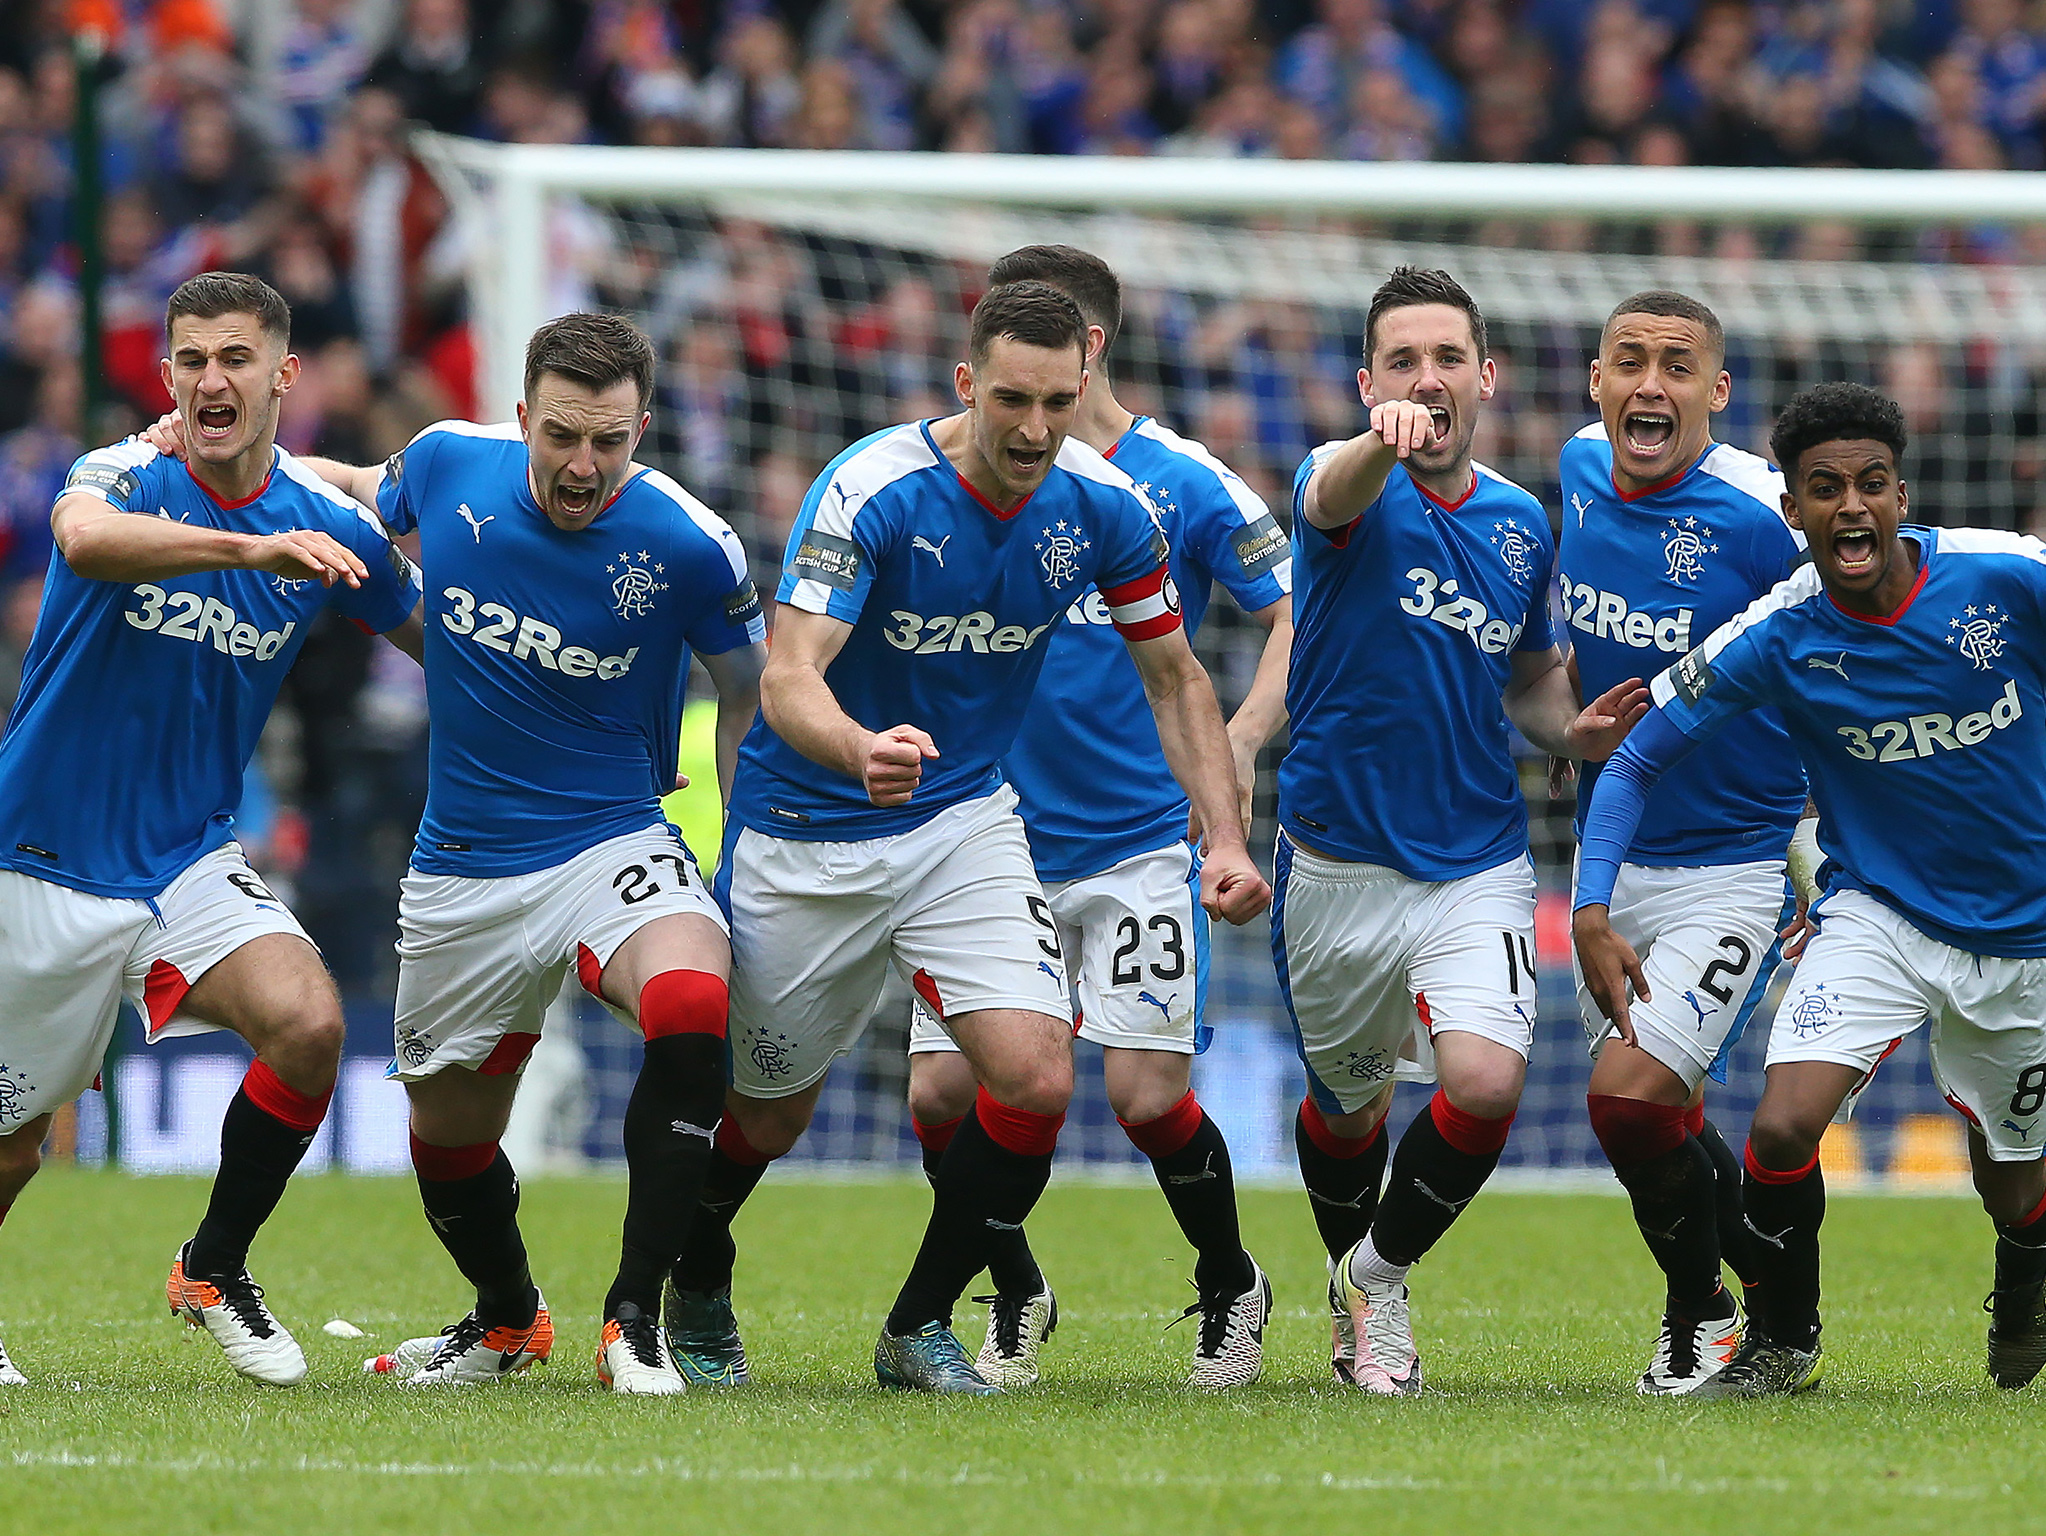 Revenue vs Rangers FC: what we know so far - Spear's Magazine